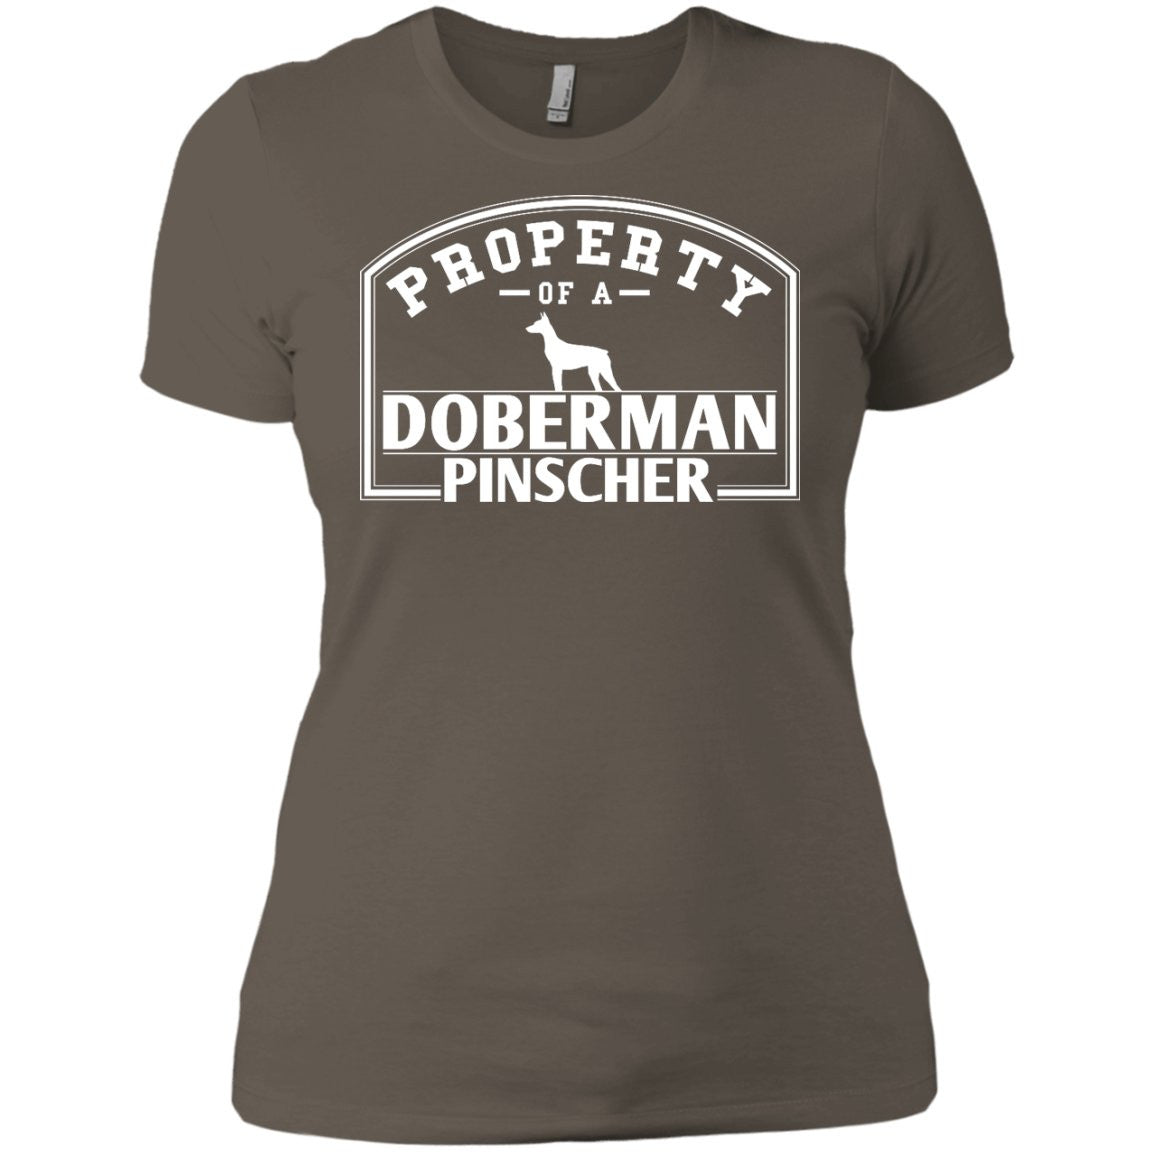 Doberman - Property Of A Doberman - Next Level Ladies' Boyfriend Tee